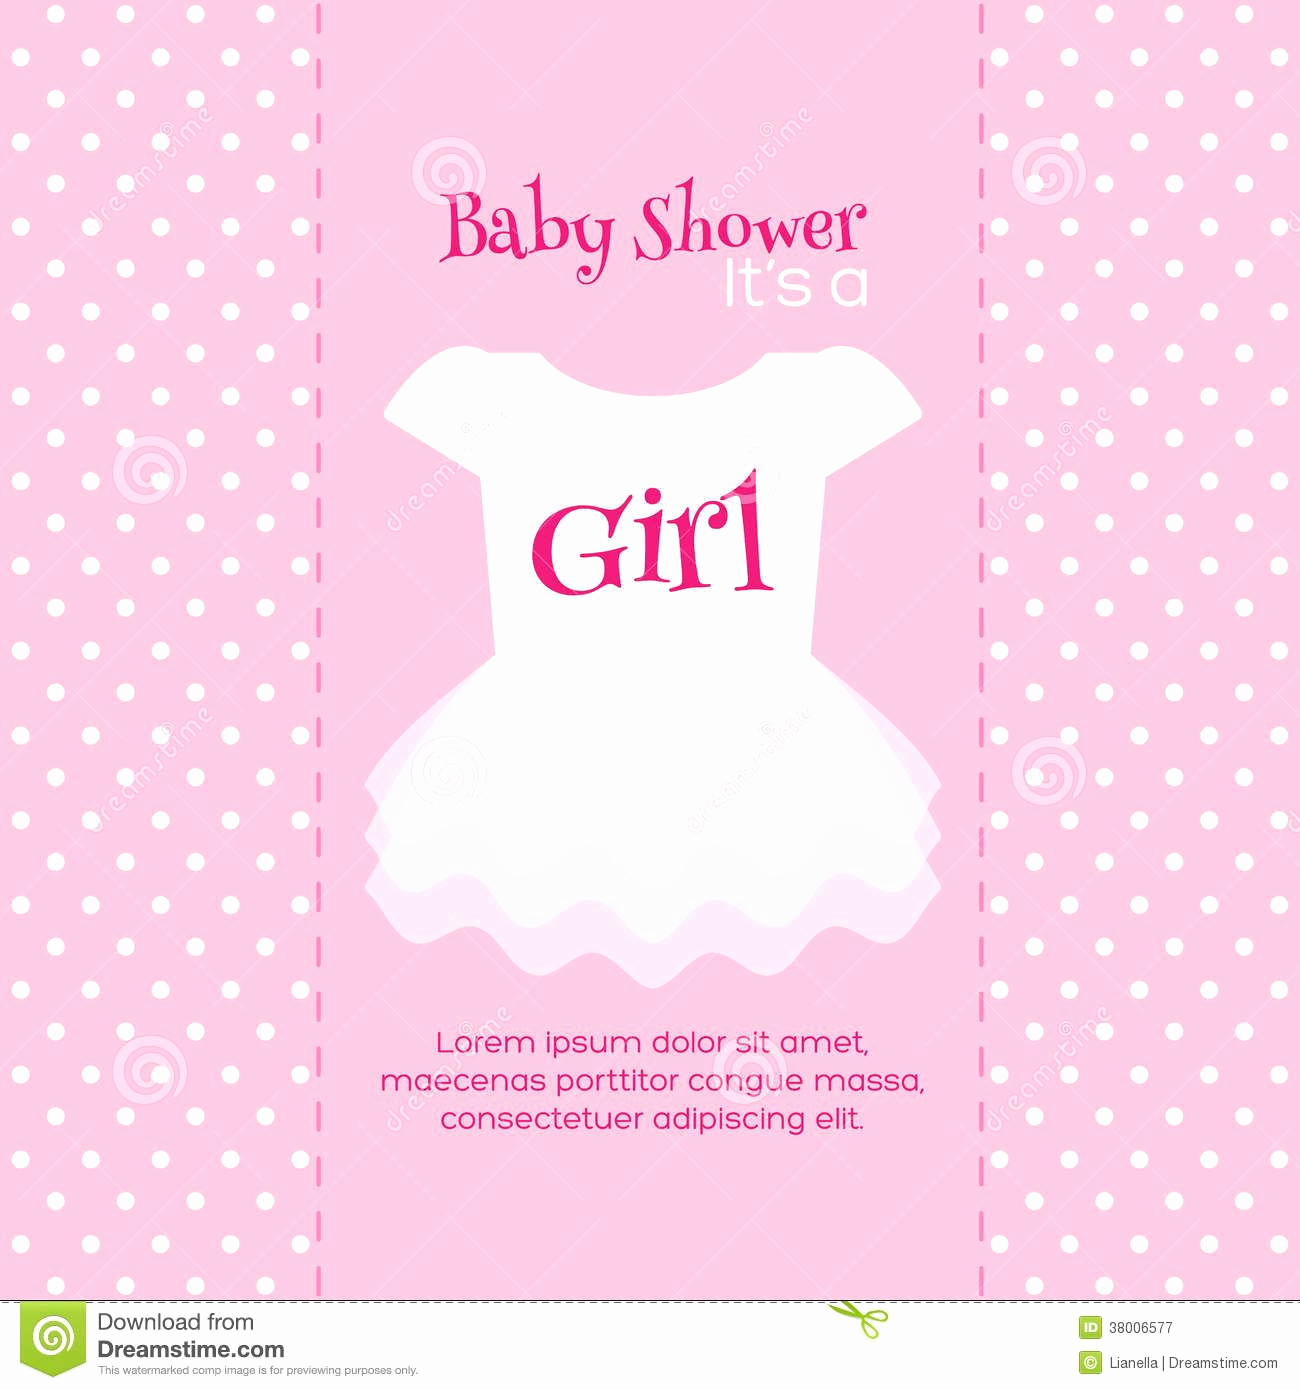 Free Printable Baby Shower Card Lovely Design Free Printable Baby Shower Invitations for Girls